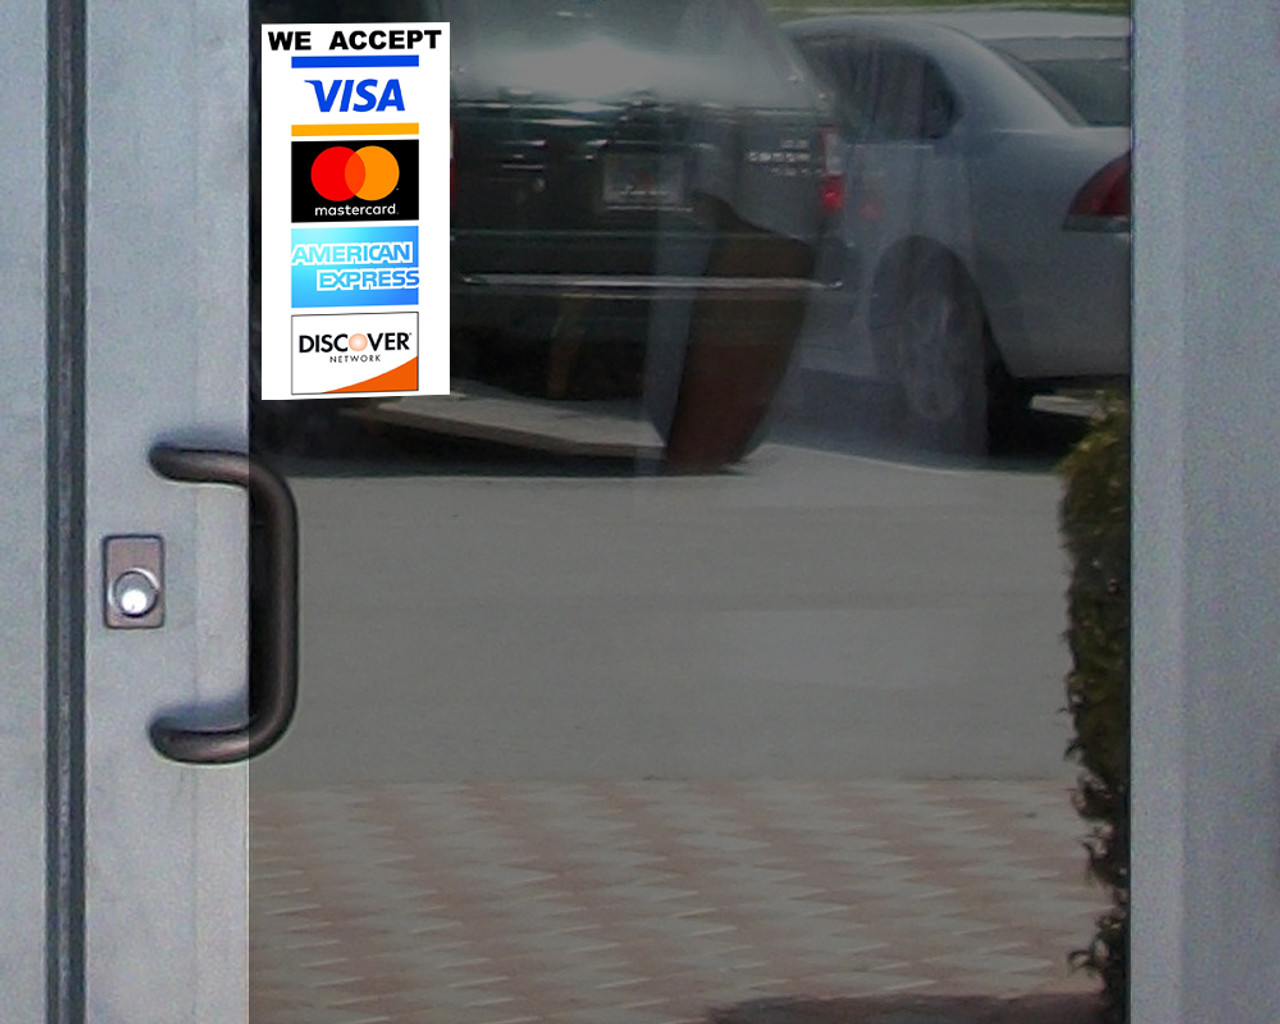 We Accept Credit Card Vinyl Sticker Waterproof with UV Coating 4x8 Stickers